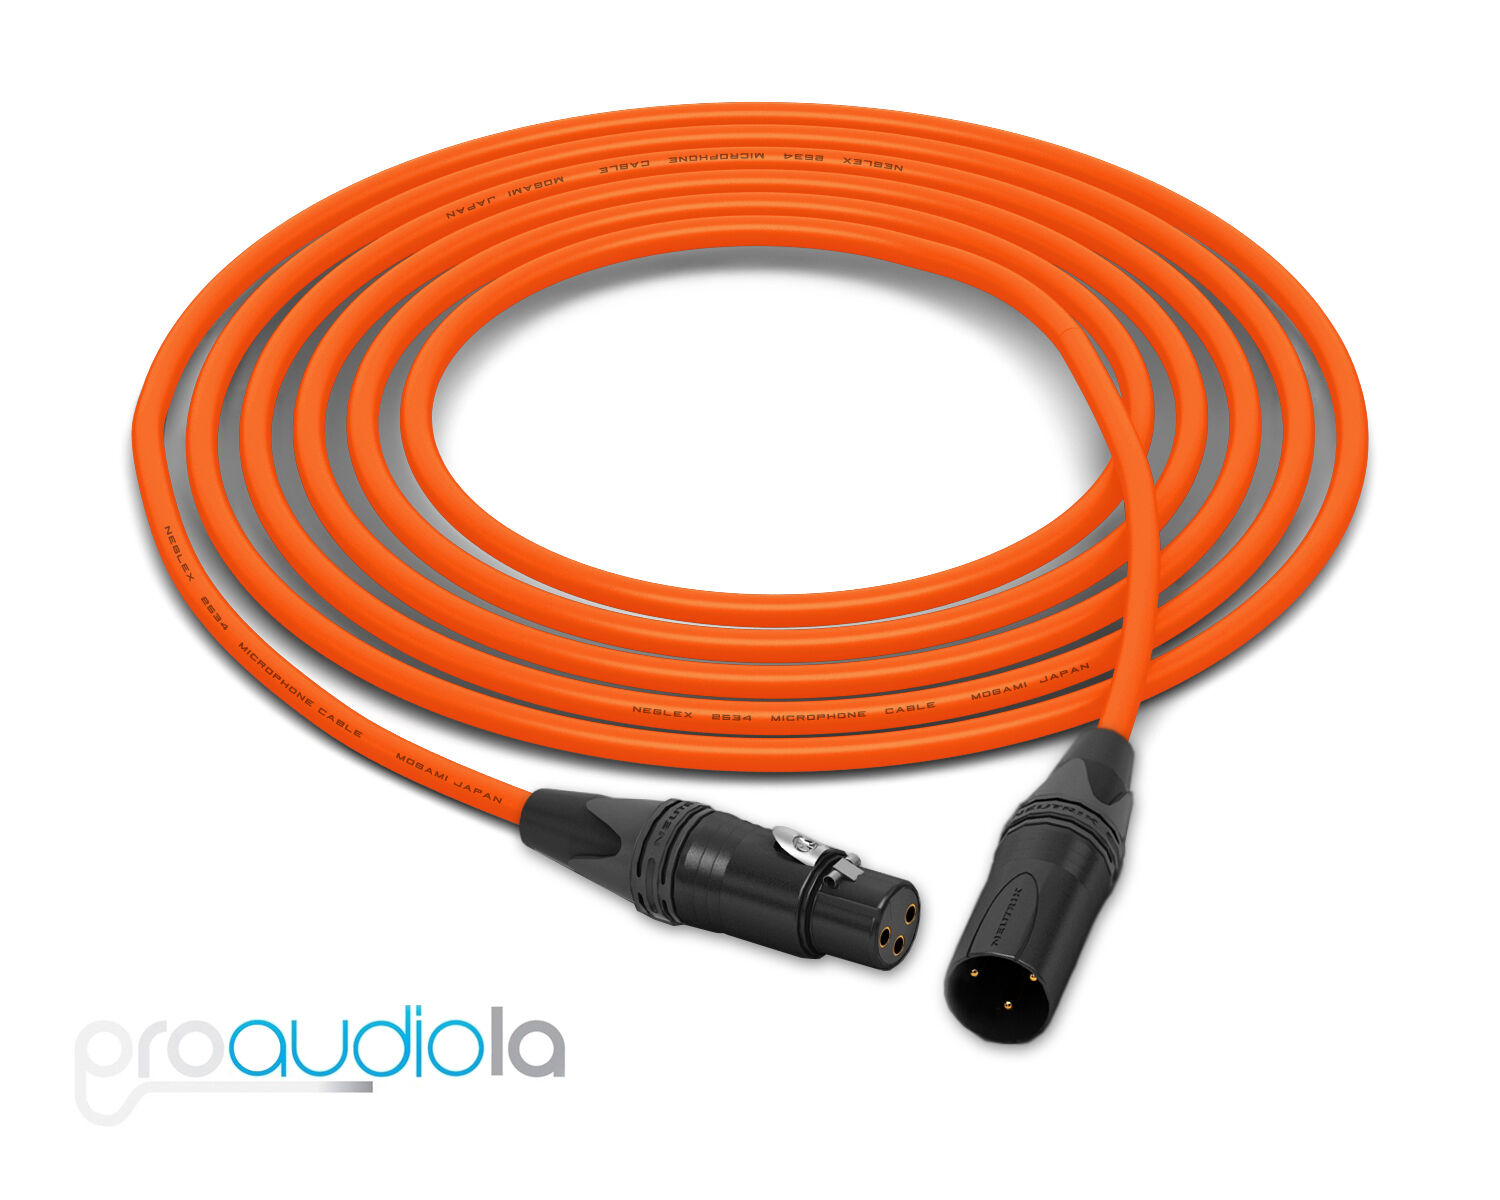 Mogami Quad 2534 Câble Neutrik Doré Xlr-F XLR-M Orange 38.1m 38.1m